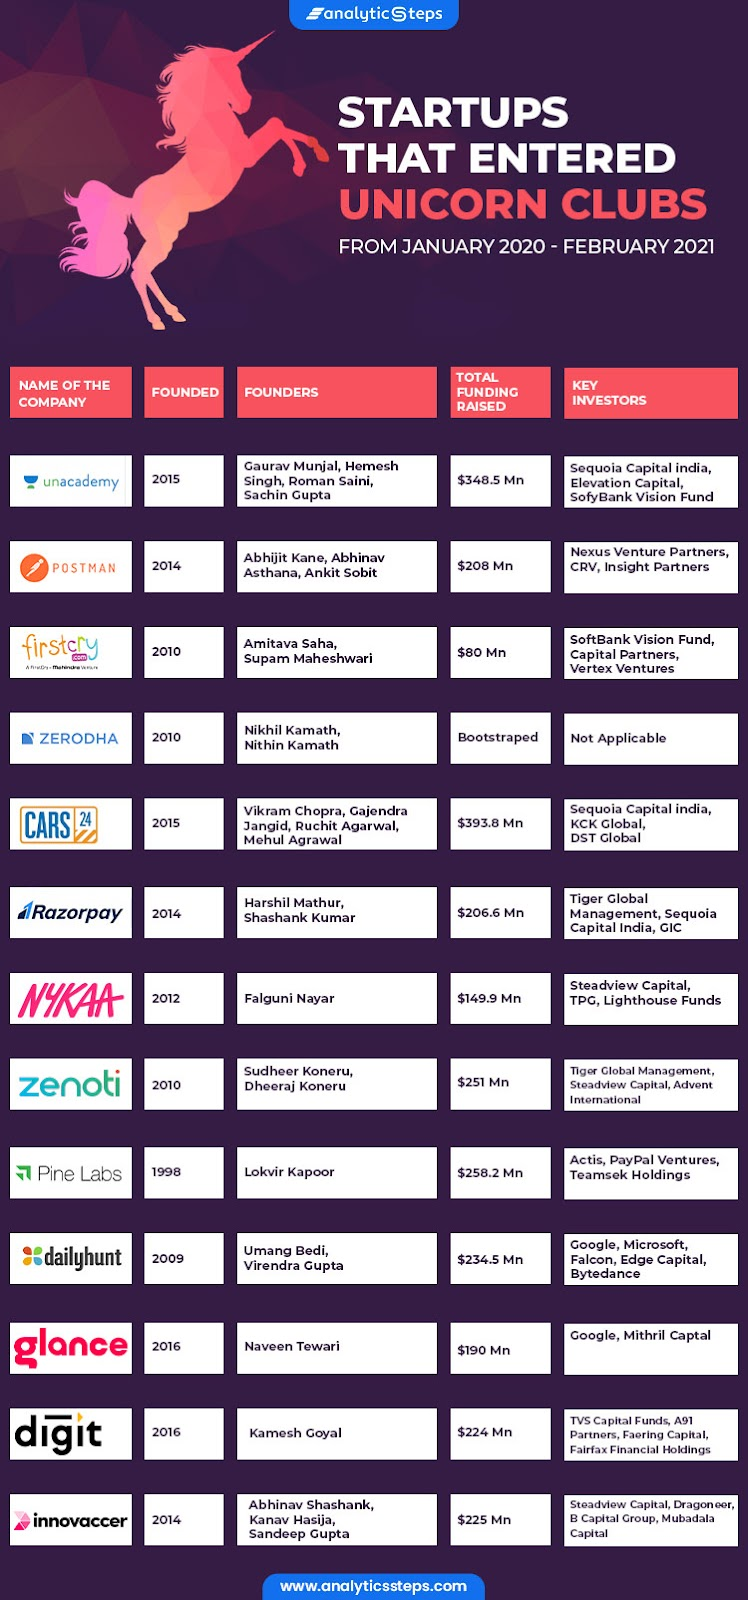 From Unacademy, Postman, FirstCry, Zerodha, Cars24, Razorpay, Nykaa, Zenoti, Pine Labs, Dailyhunt, Glance, Digit Insurance to Innovaccer, there are many startups that entered the unicorn club from January 2020 - February 2021.